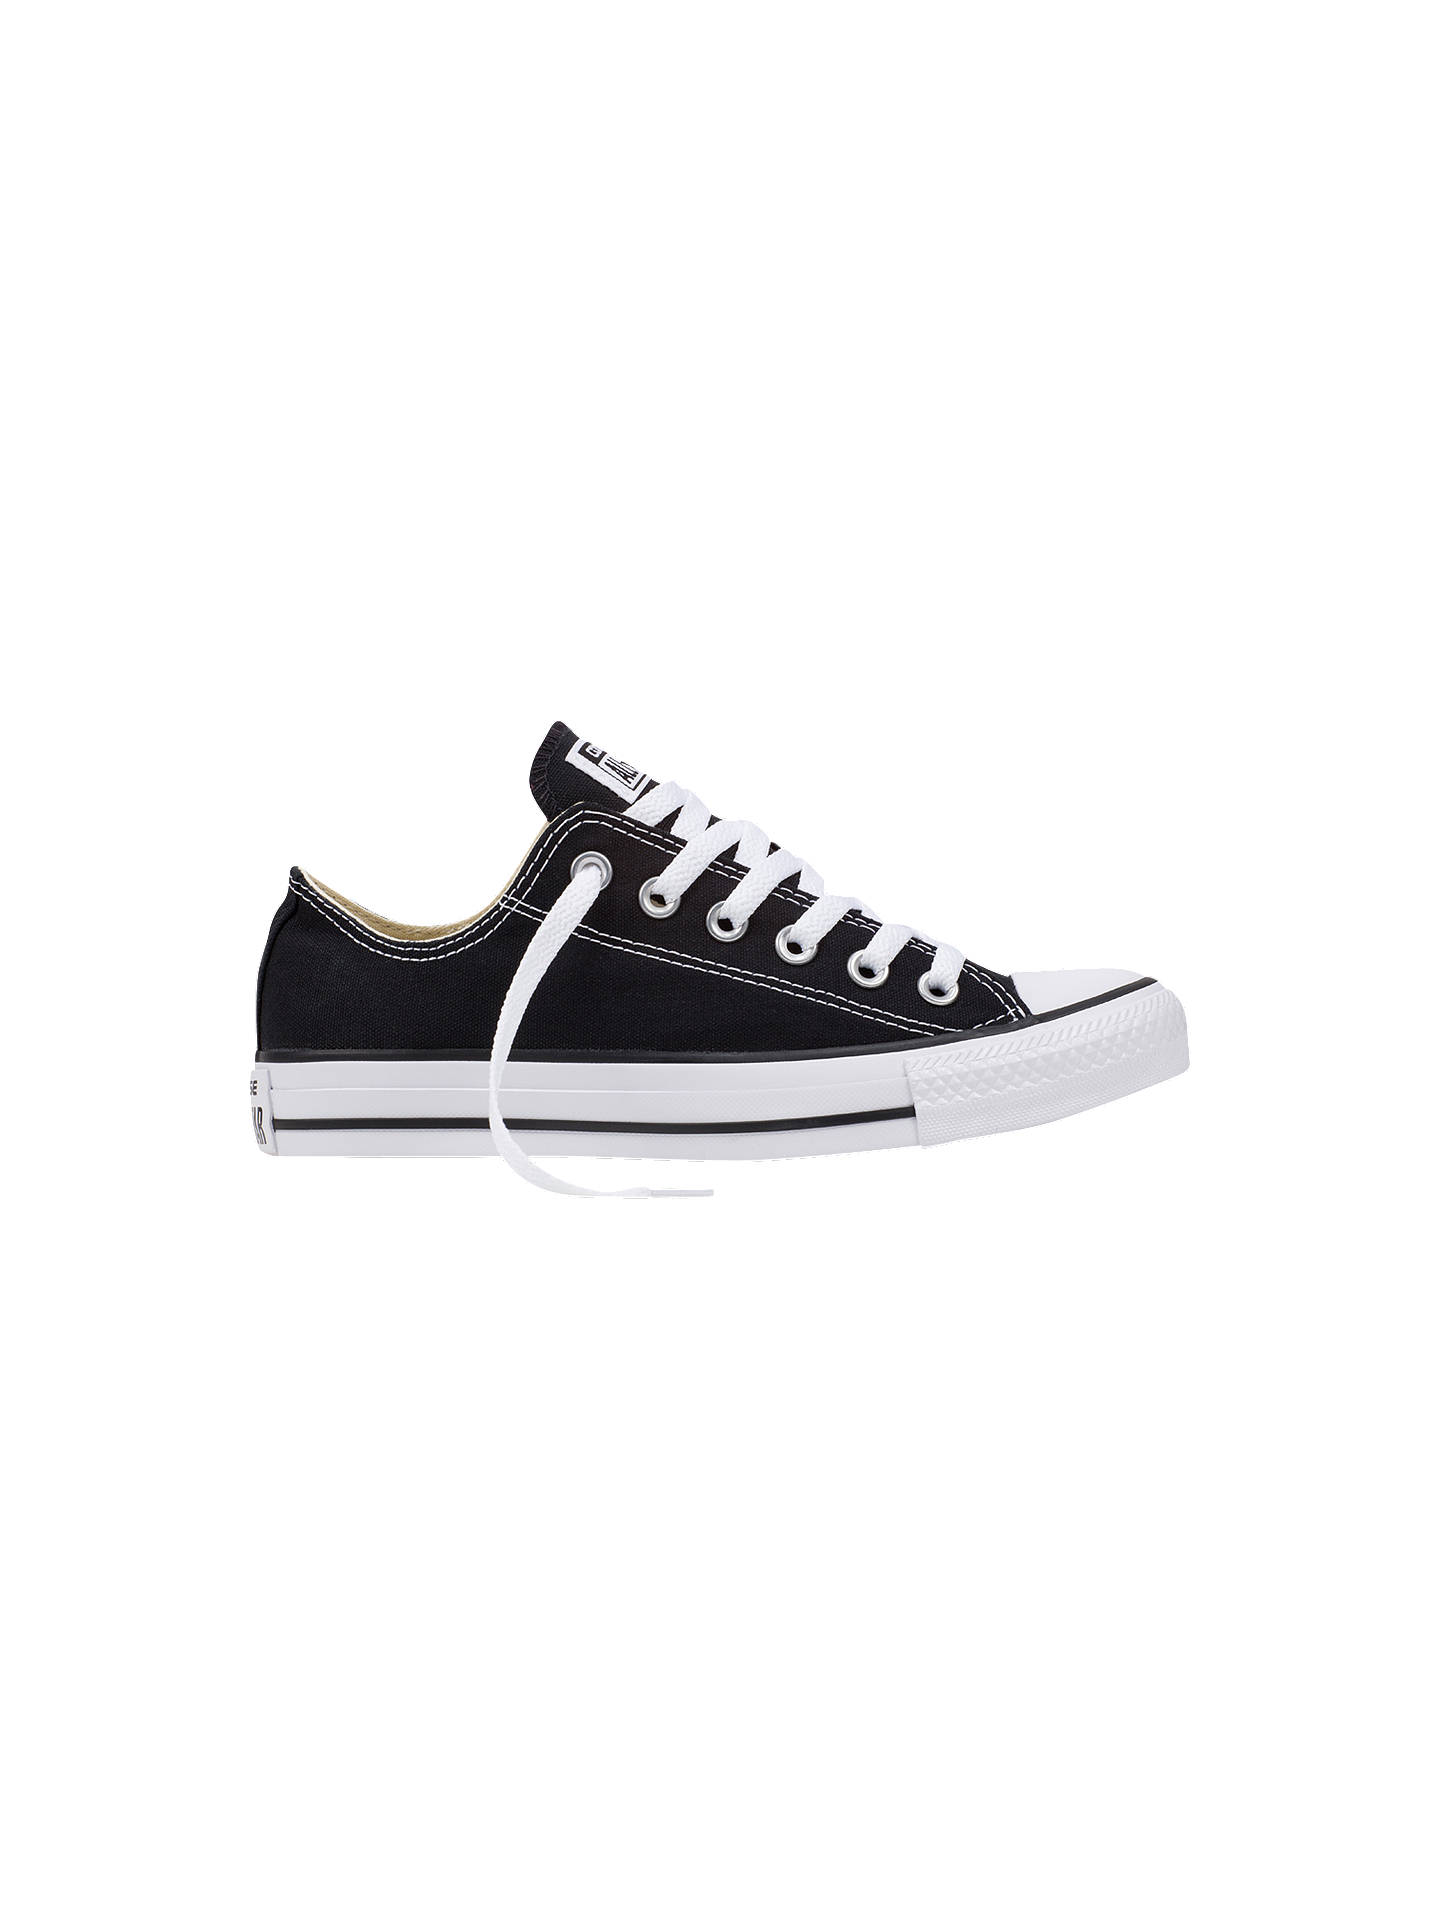 a938c564ee16 Converse Chuck Taylor All Star Ox Trainers at John Lewis   Partners